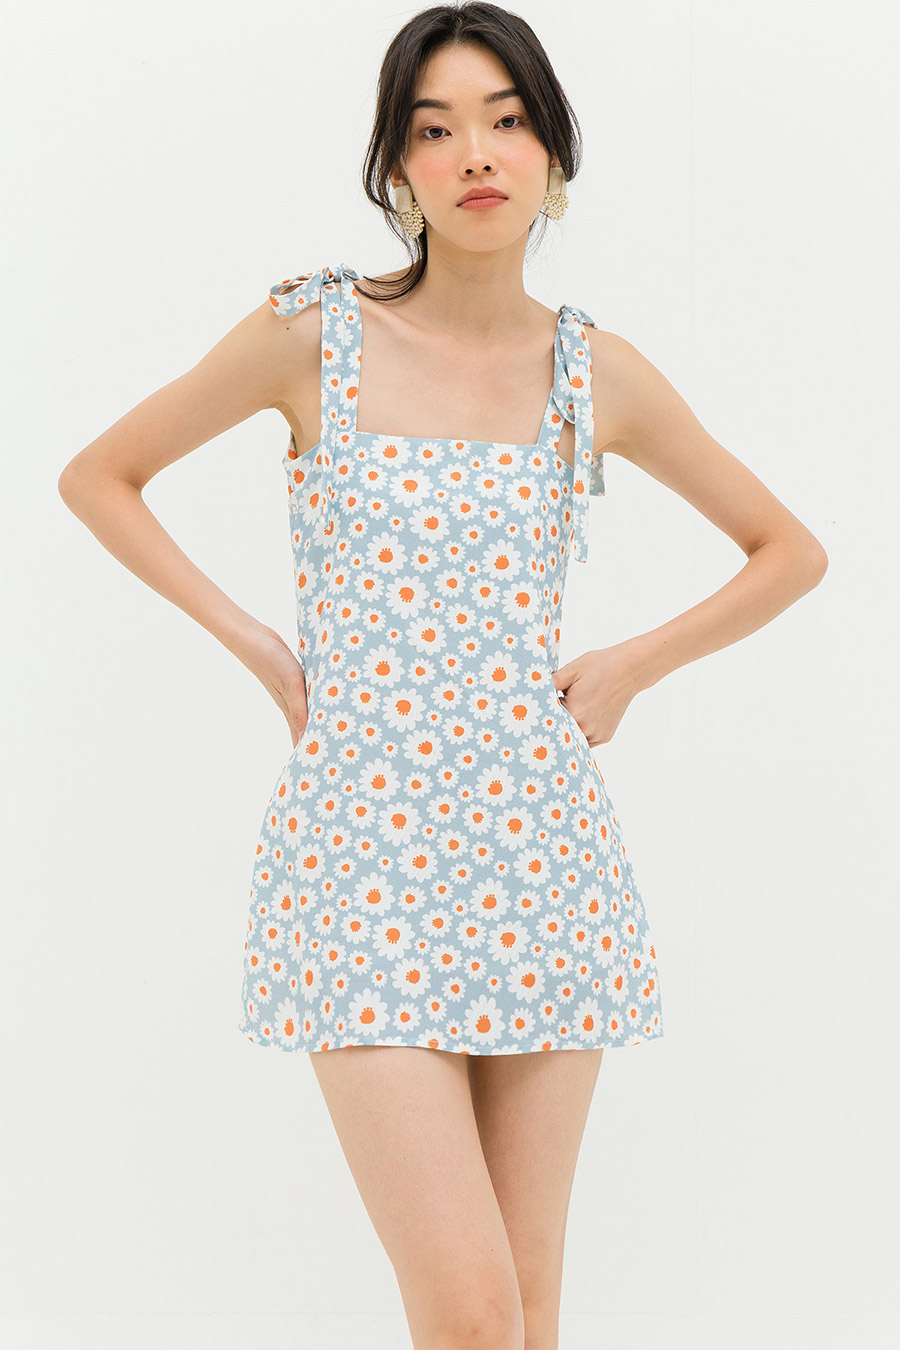 CHOQUET DRESS - SKY DAISIES